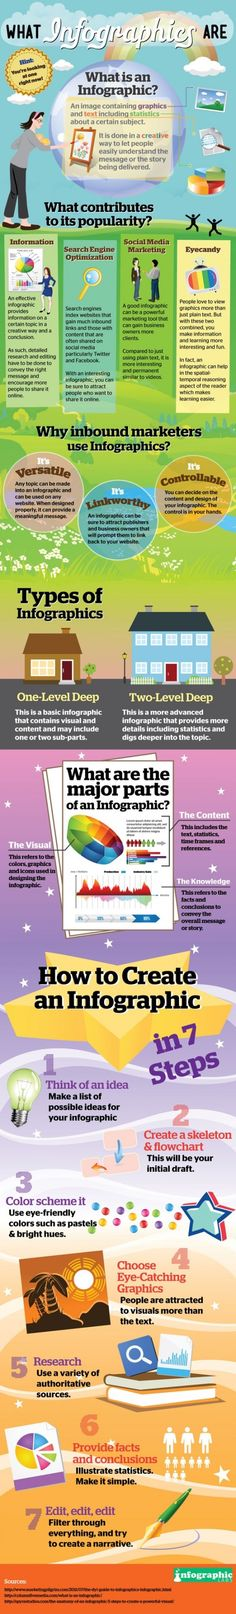 What are Infographics? How to use them [infographic]